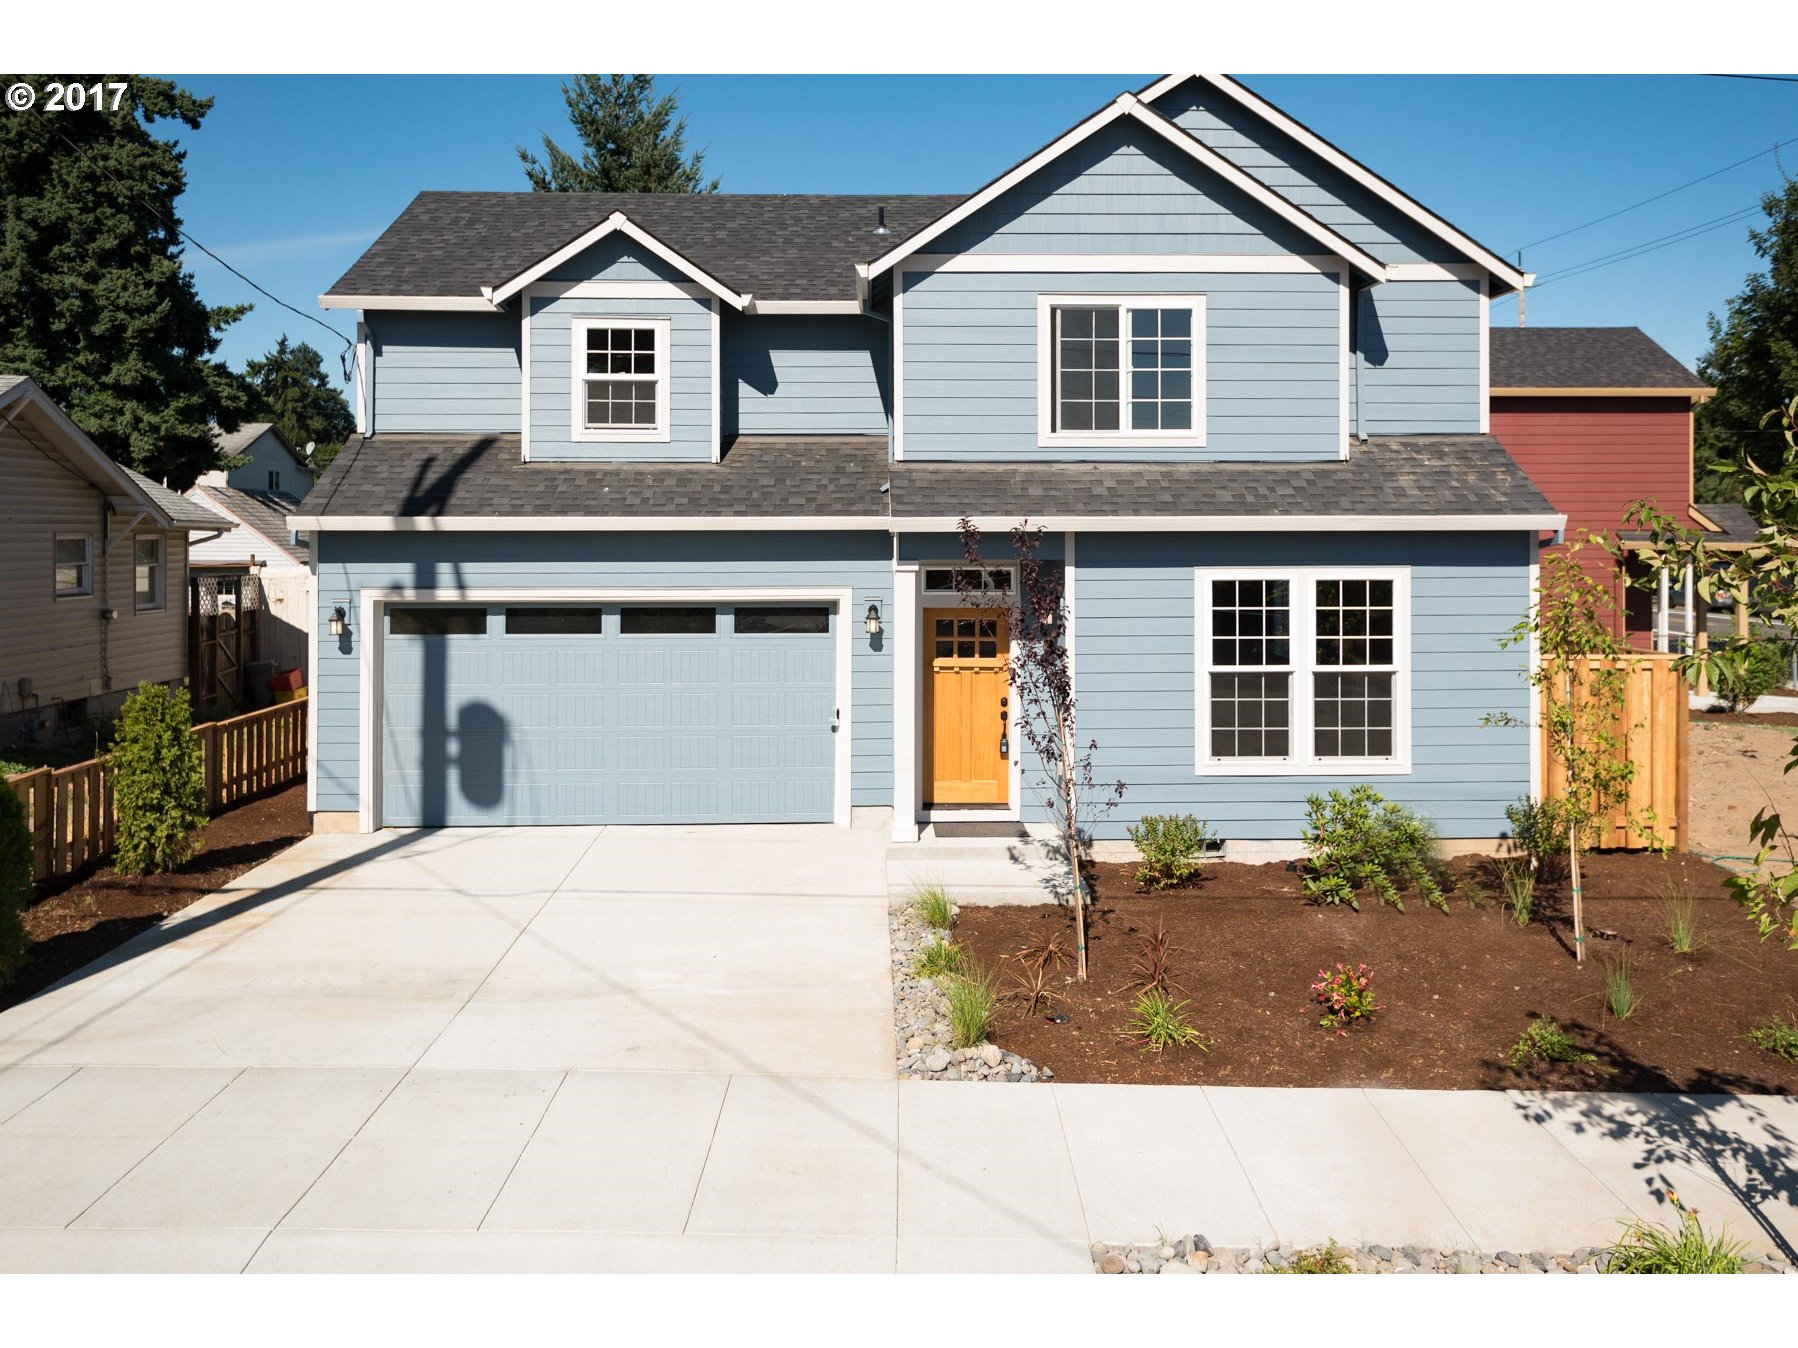 Functional design with two car garage!  3 Bedrooms plus bonus room.  Quartz counters in kitchen, designer cabinets, stainless steel appliances and microwave.  Hardwood floors and elevated ceilings throughout main level. Gas fireplace with full wrap mantel. Craftsman millwork.   Designer tiles in bathrooms.  Vaulted Master with walk in closet.  Built by established, award winning builder!